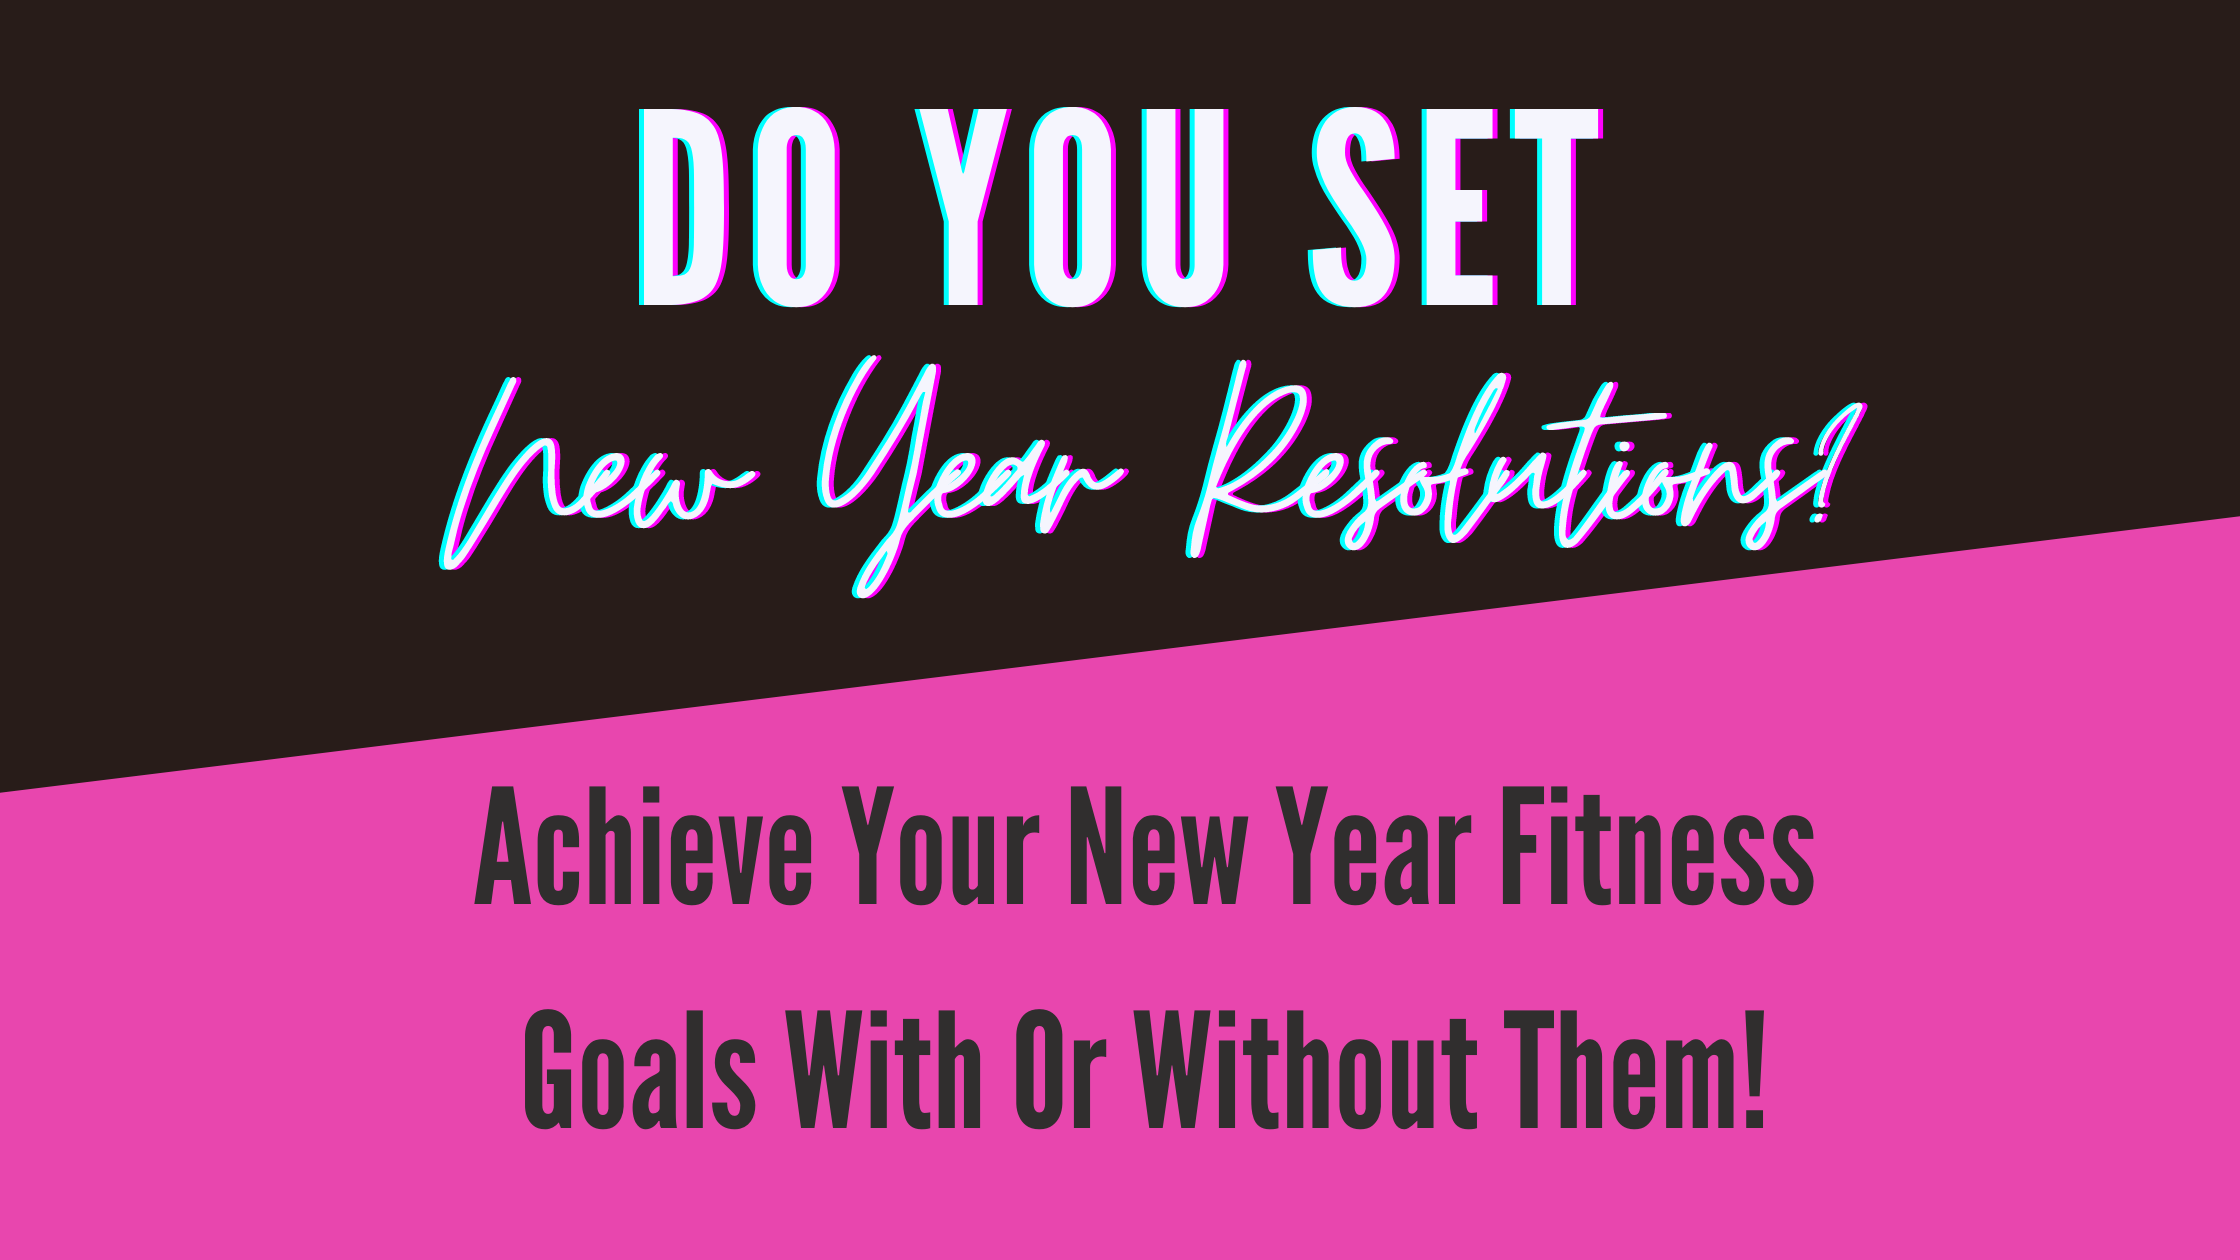 Do You Set New Year Resolutions?  Achieve Your New Year Fitness Goals With Or Without Them!